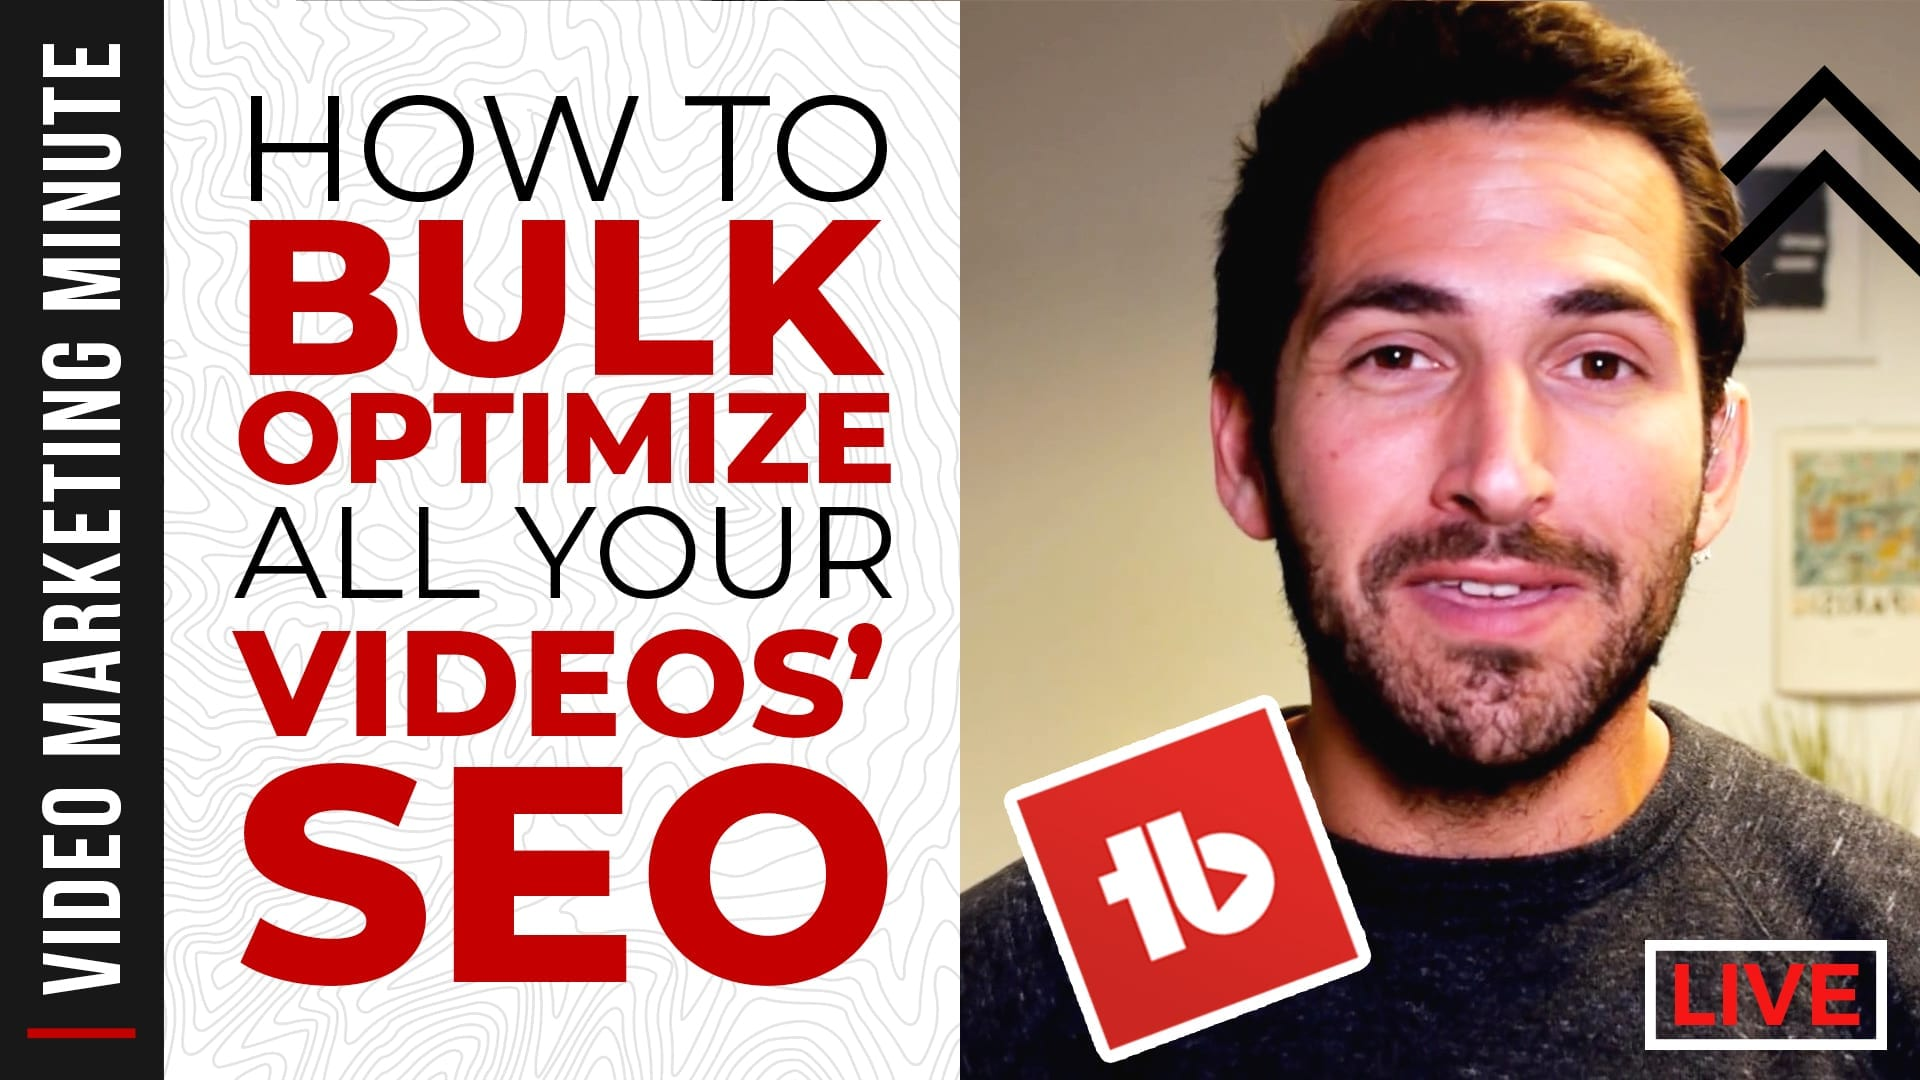 How to Bulk Optimize All Your Videos SEO